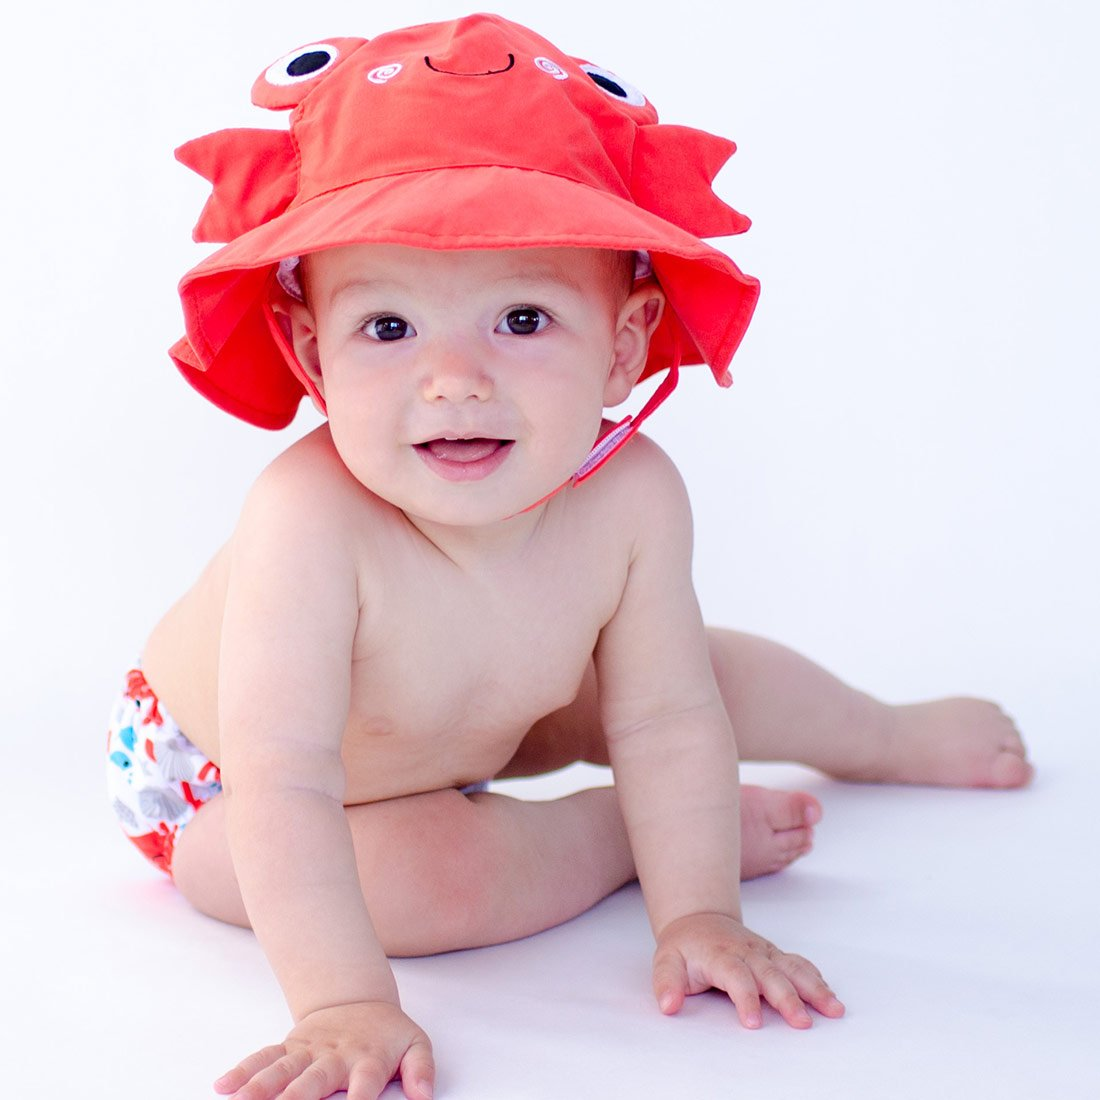 ZOOCCHINI UPF50+ Baby Swim Diaper & Sun Hat Set - Charlie the Crab-1